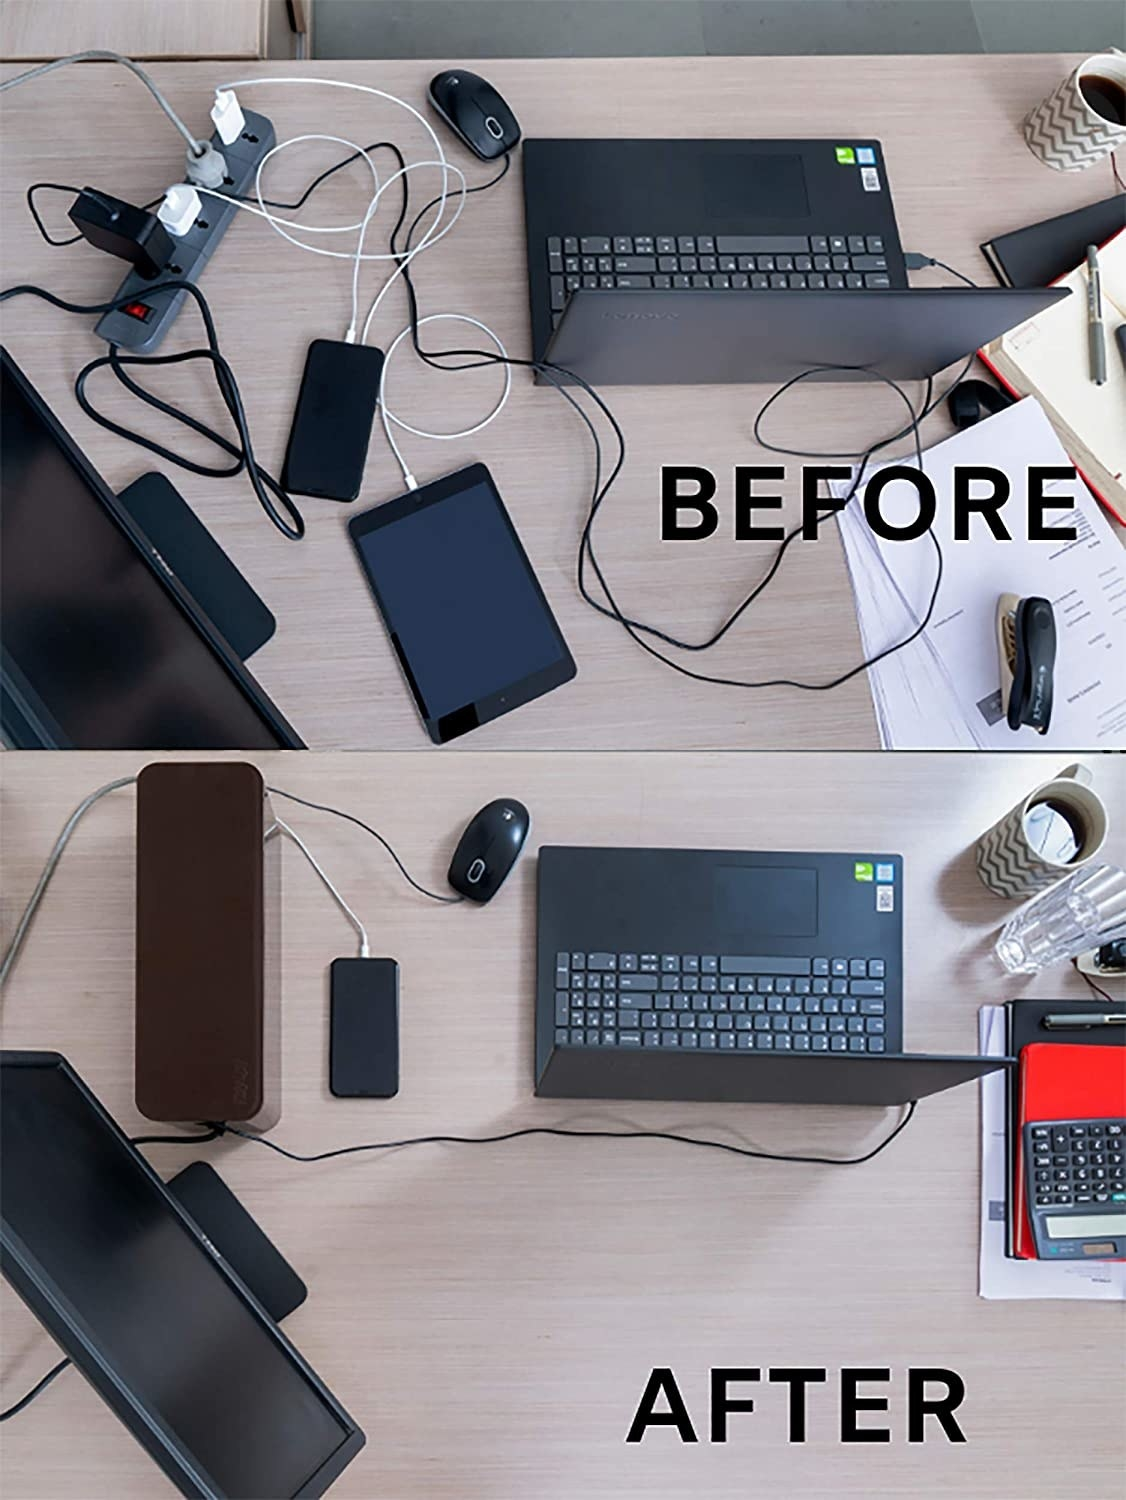 Before and after using the desk wire bin. The before image has a messy desk and the after image has a tidy desk.